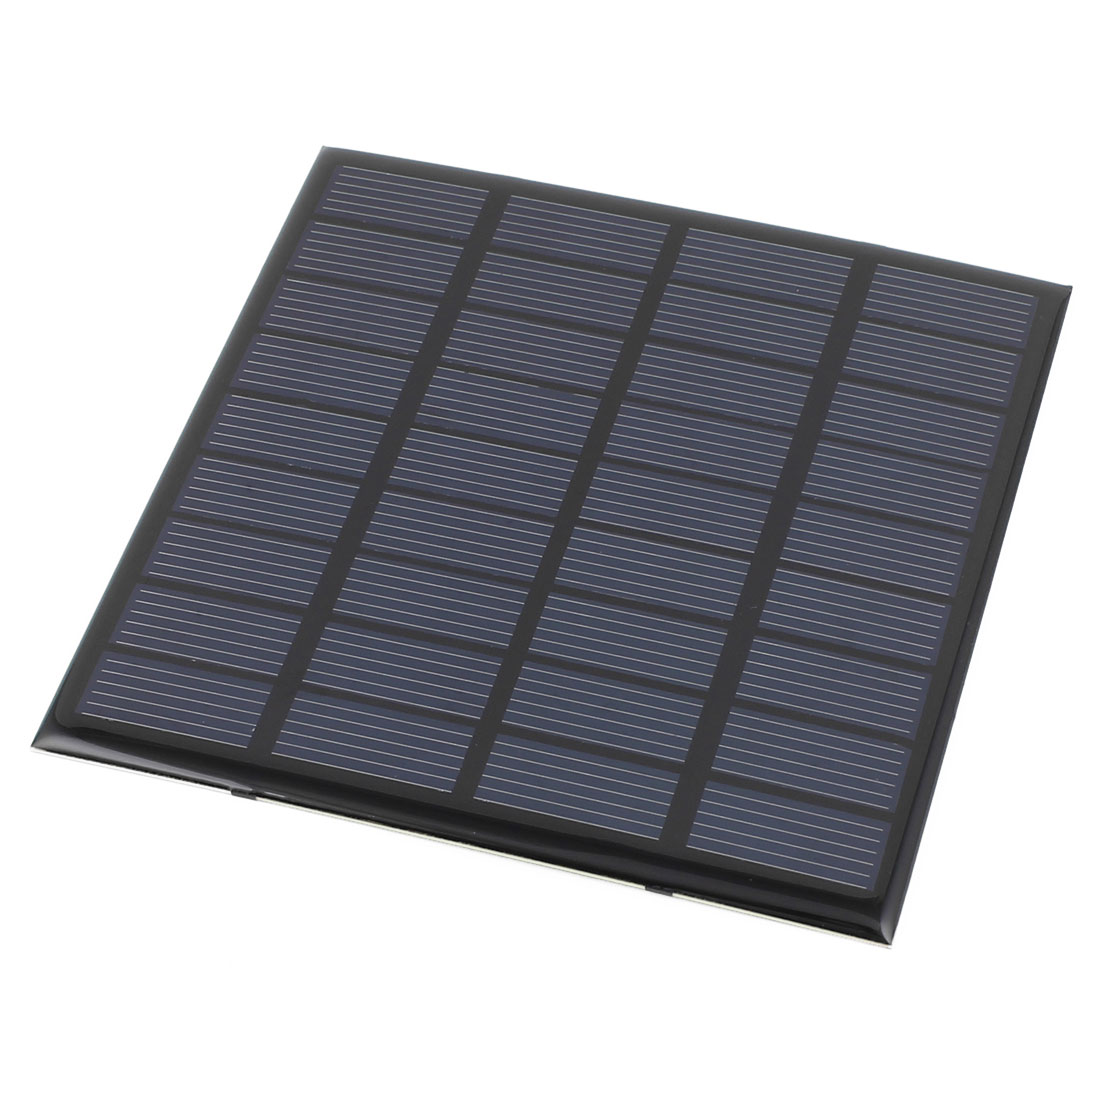 9V 2W DIY Polycrystallinesilicon Solar Panel Power Cell Battery Charger 115mm x 115mm